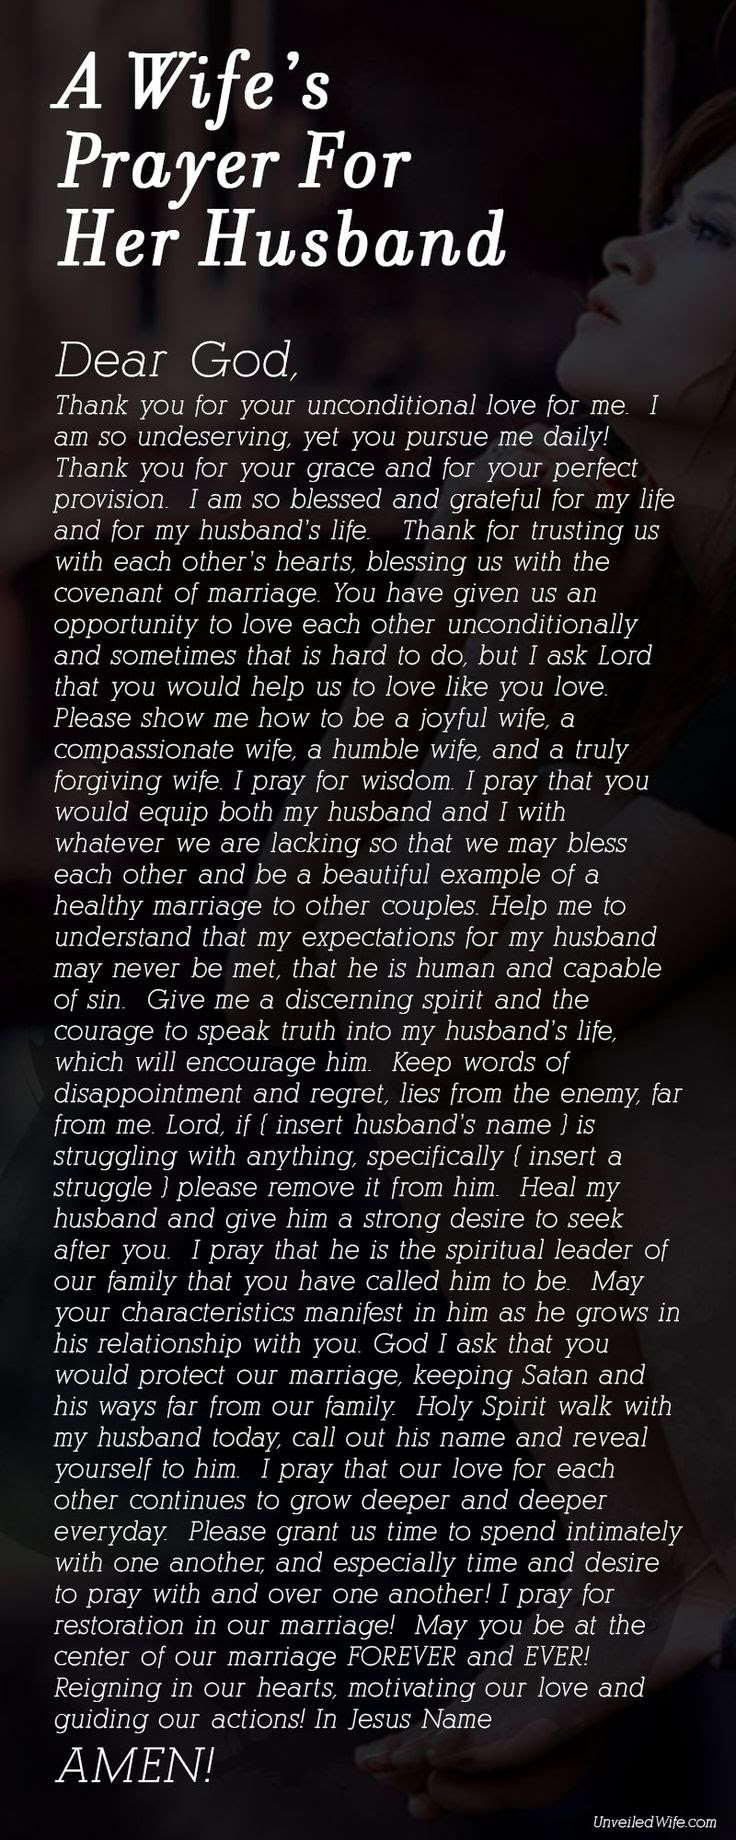 A Wife's Prayer For Her Husband - God I ask that you would protect our marriage, keeping Satan and his ways far from our family.